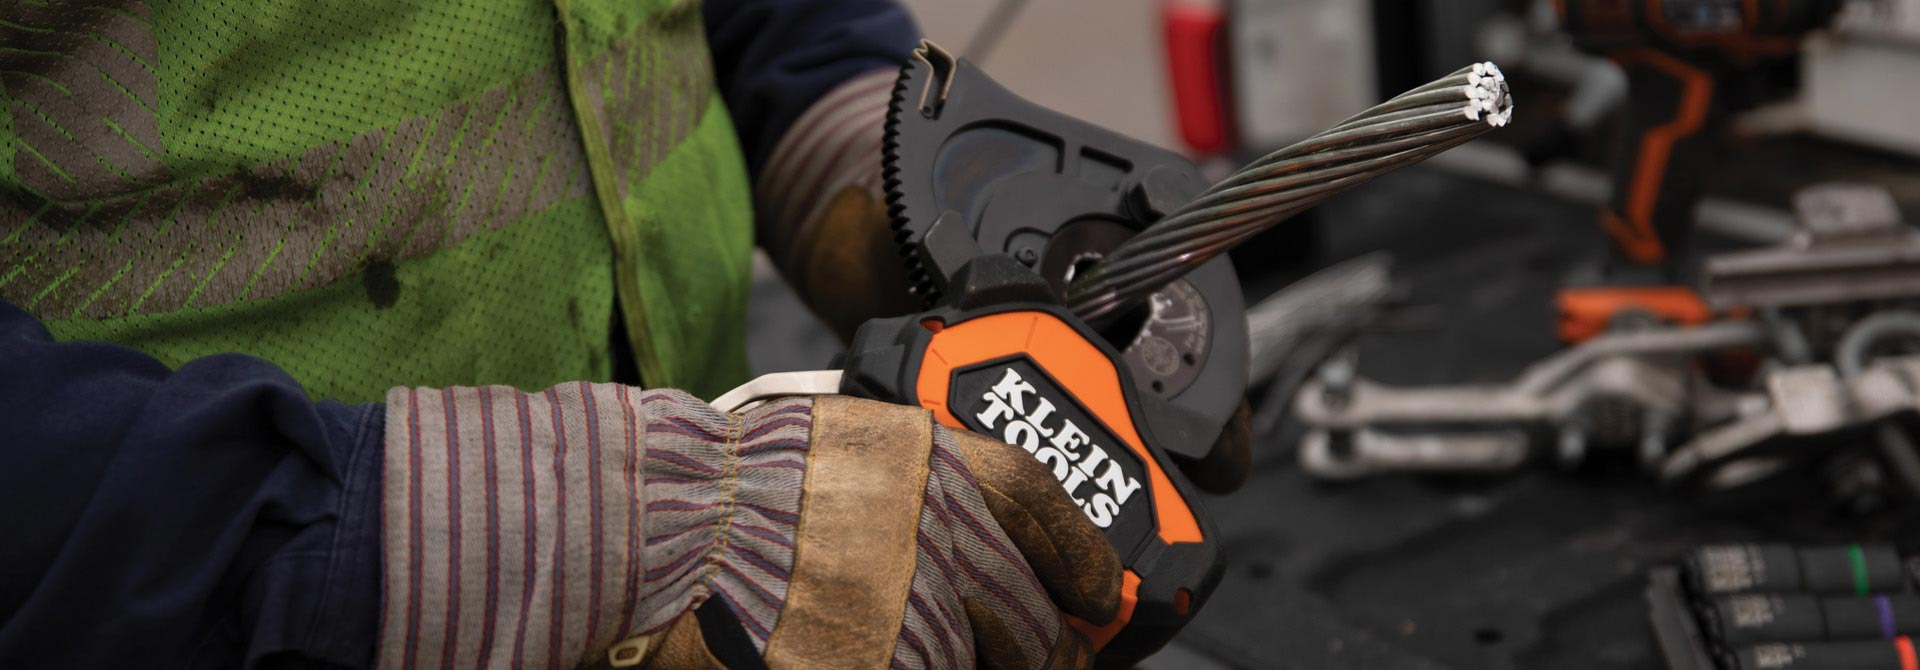 Next Generation, \r\nBattery-Operated \r\nCable Cutters